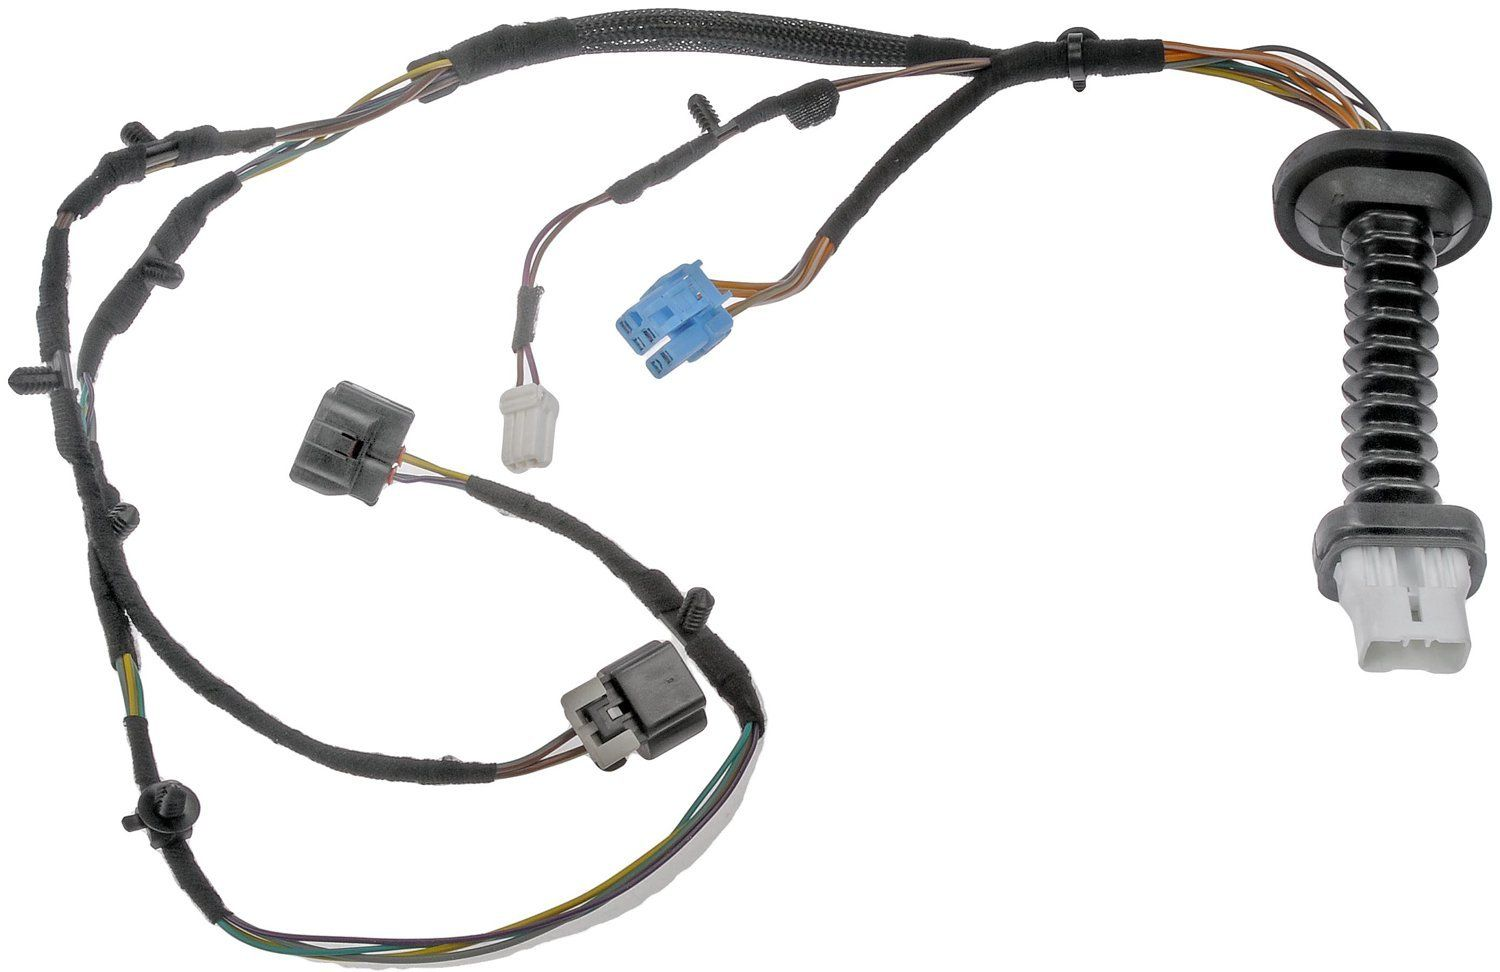 Dodge Ram Door Wiring Harness Starting Know About Diagram Replacement 2500 Dorman Go Parts Rh Com 2005